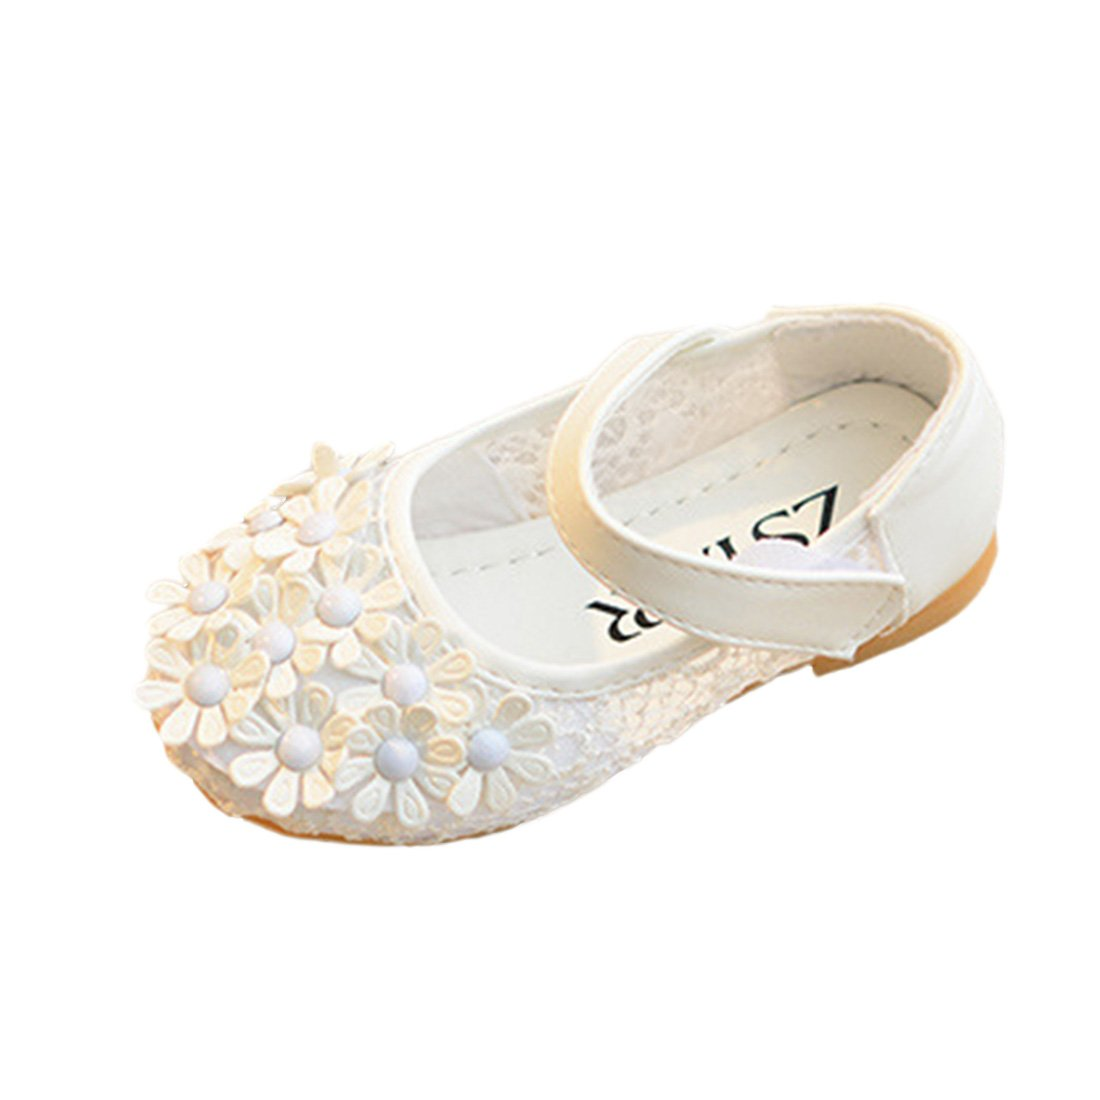 YIBLBOX Kids Girls Ballet Flats Shoes Mary Janes Wedding Party Flowers Princess Dress Toddler Shoes